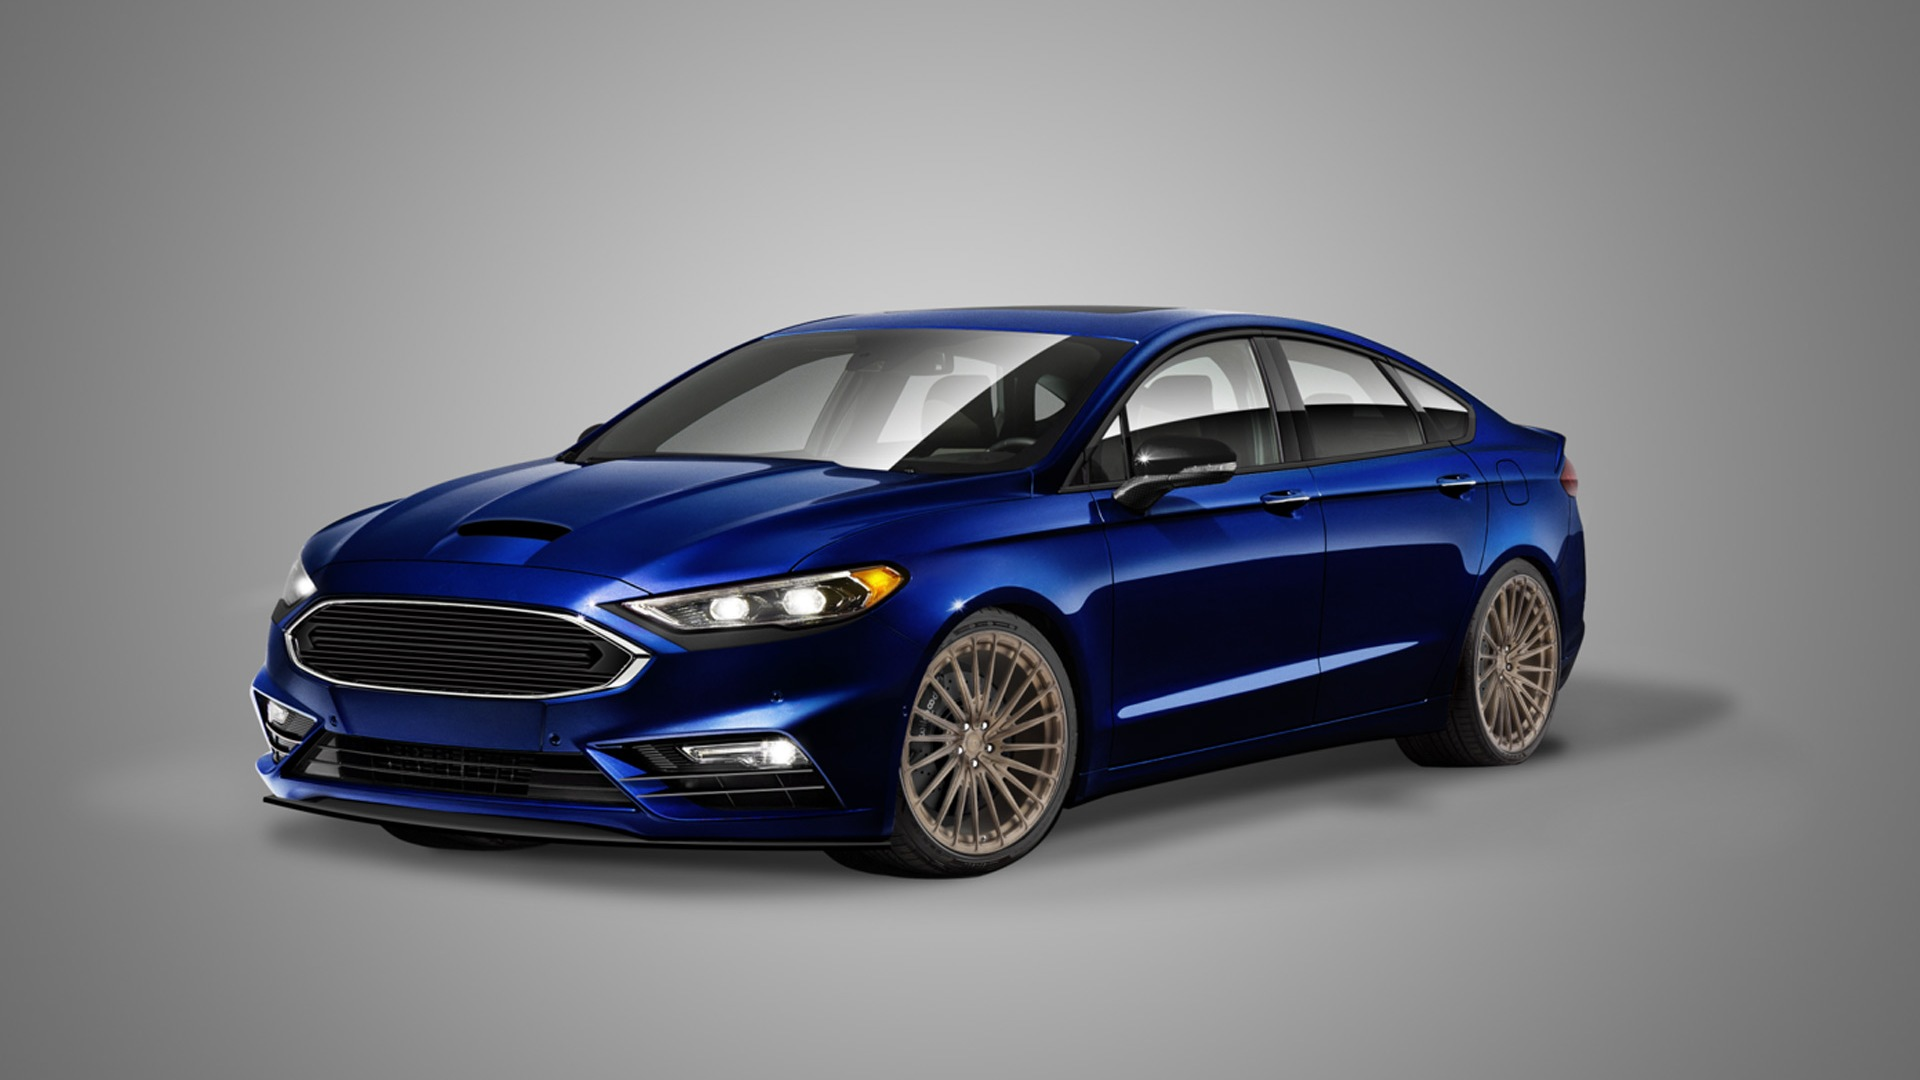 52 The 2020 The Spy Shots Ford Fusion New Model and Performance